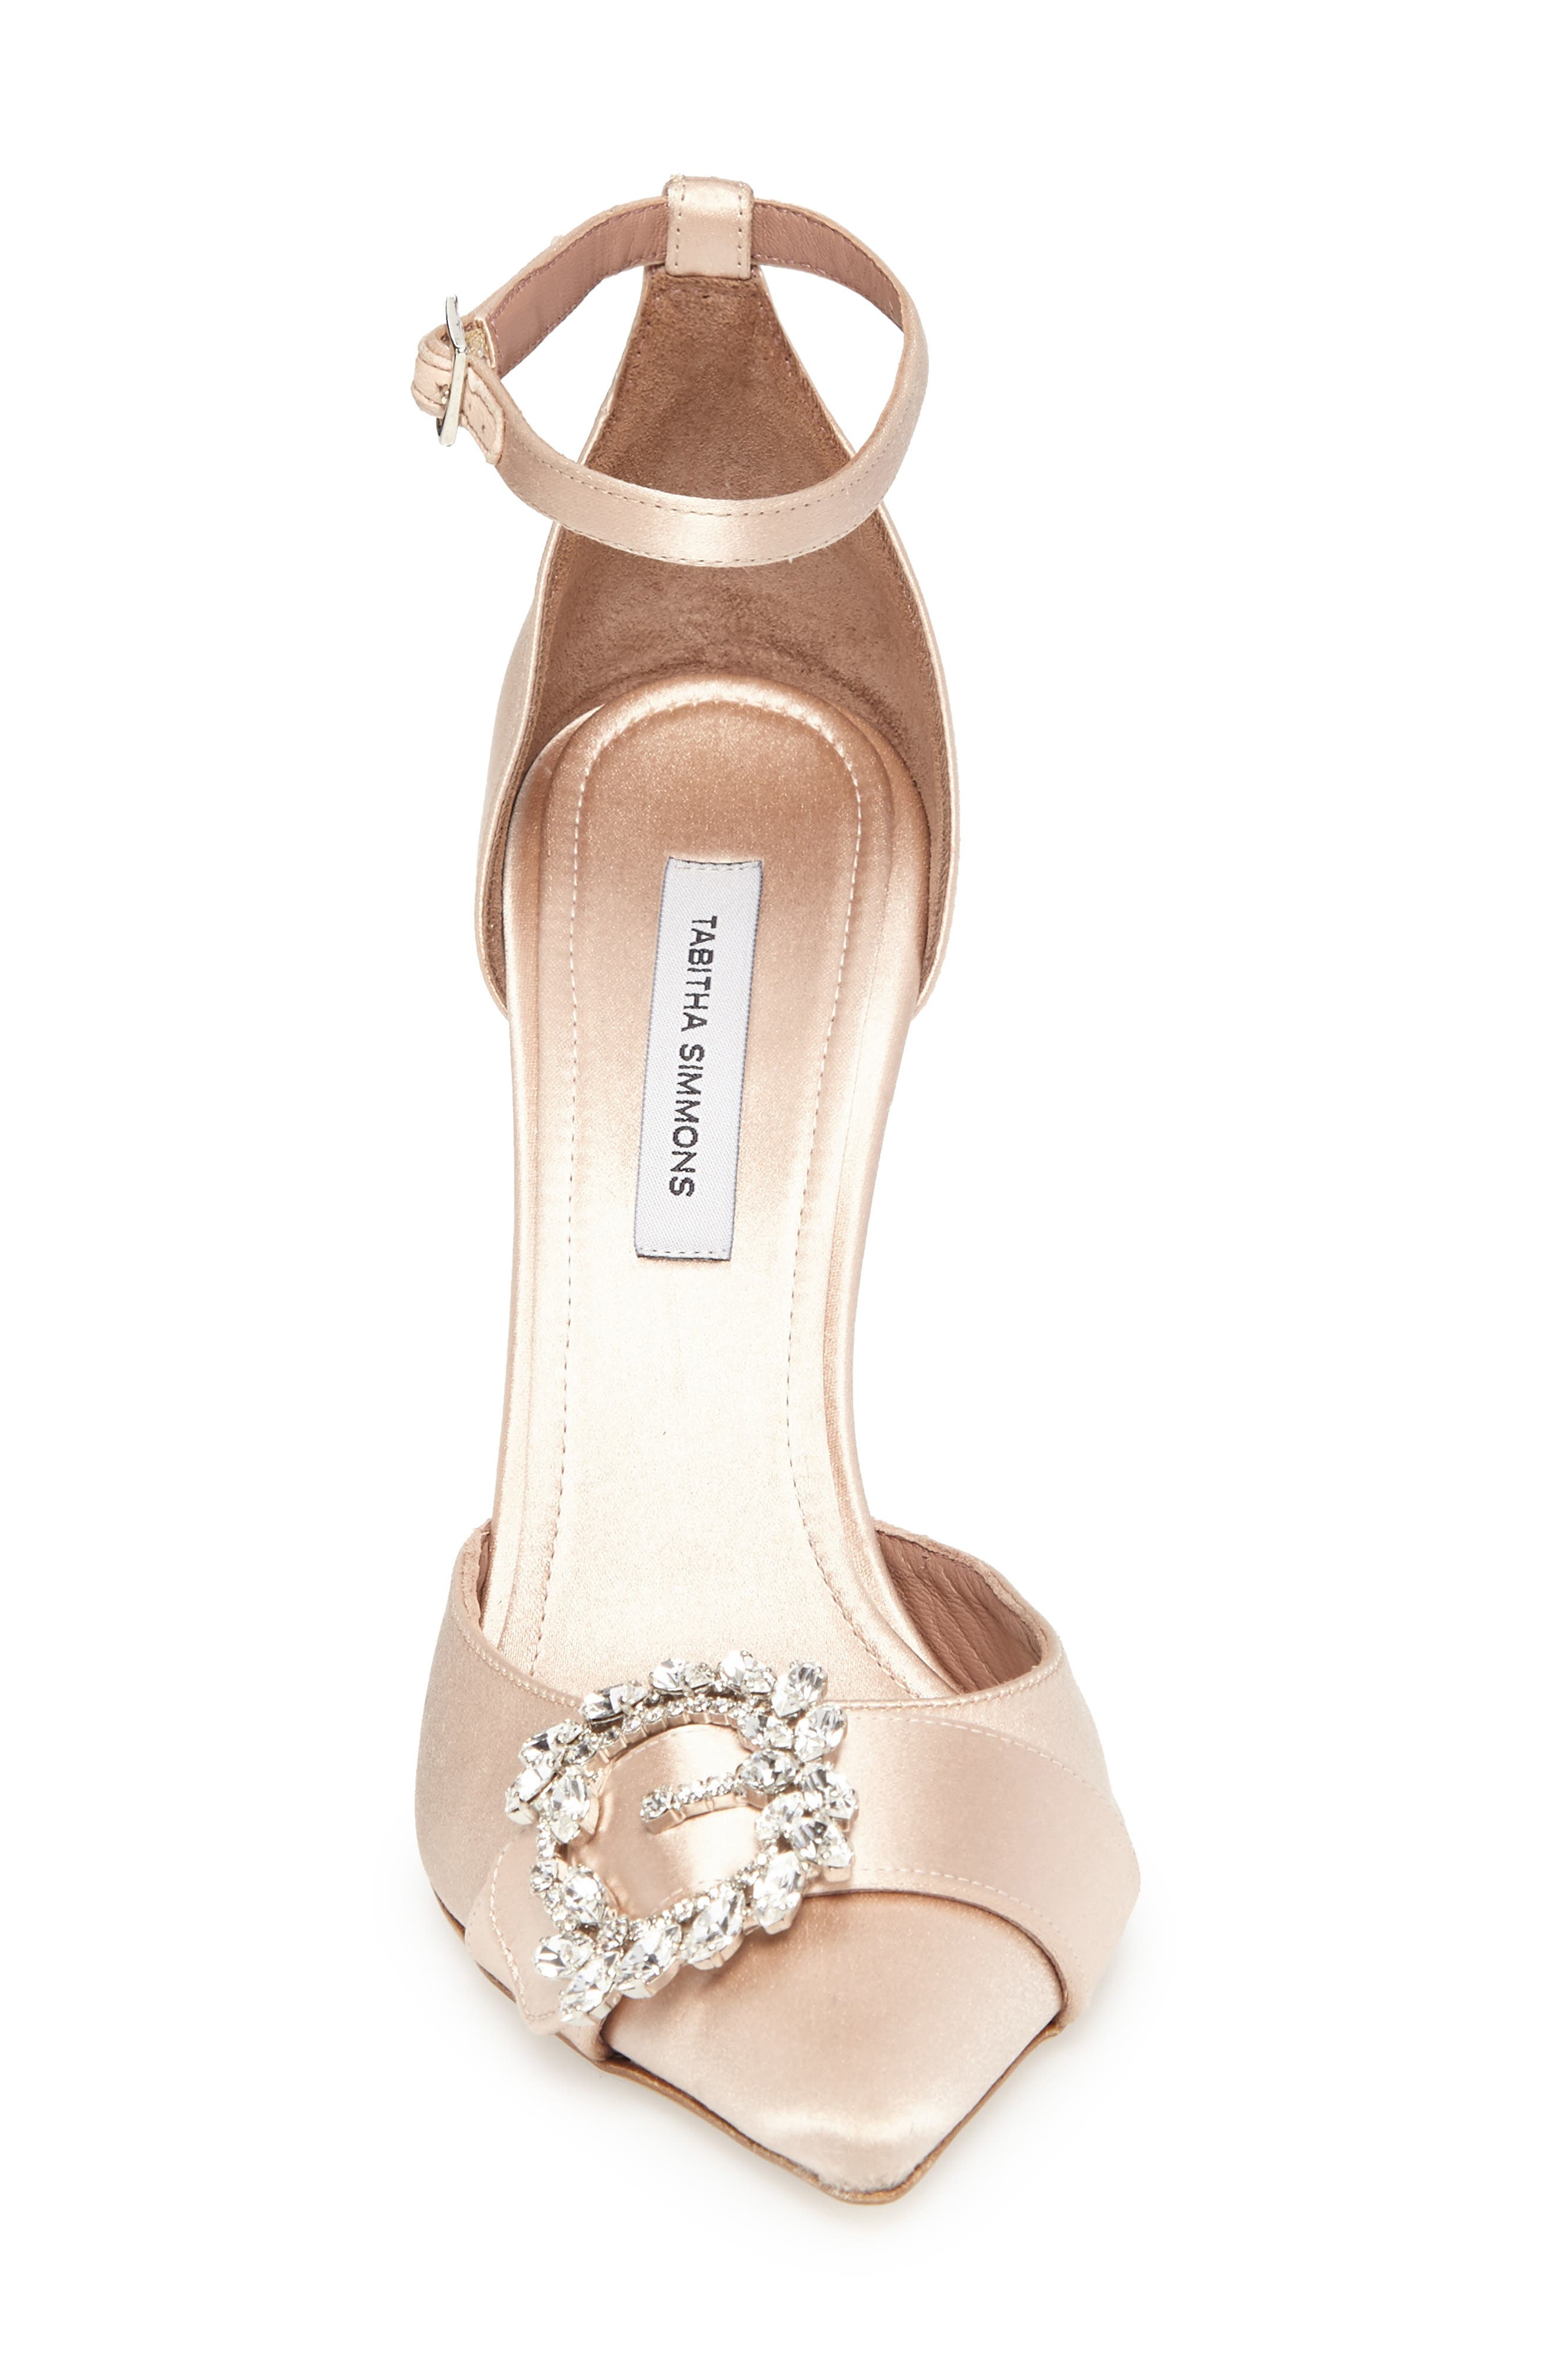 Tie The Knot Crystal Buckle Pump,                             Alternate thumbnail 4, color,                             250